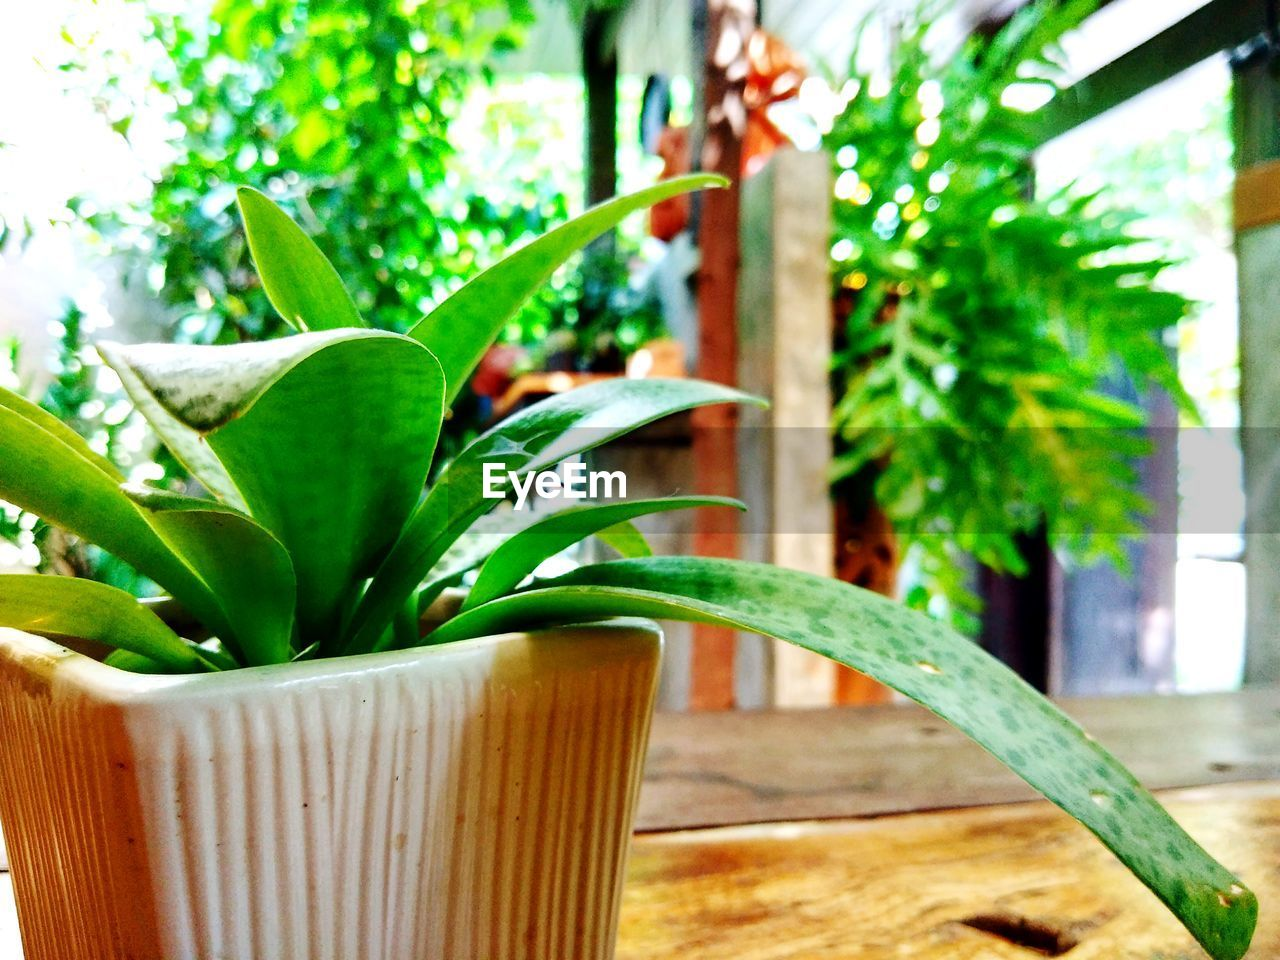 plant, leaf, plant part, green color, growth, nature, no people, focus on foreground, potted plant, close-up, indoors, freshness, day, wood - material, table, houseplant, beauty in nature, food, tree, flower pot